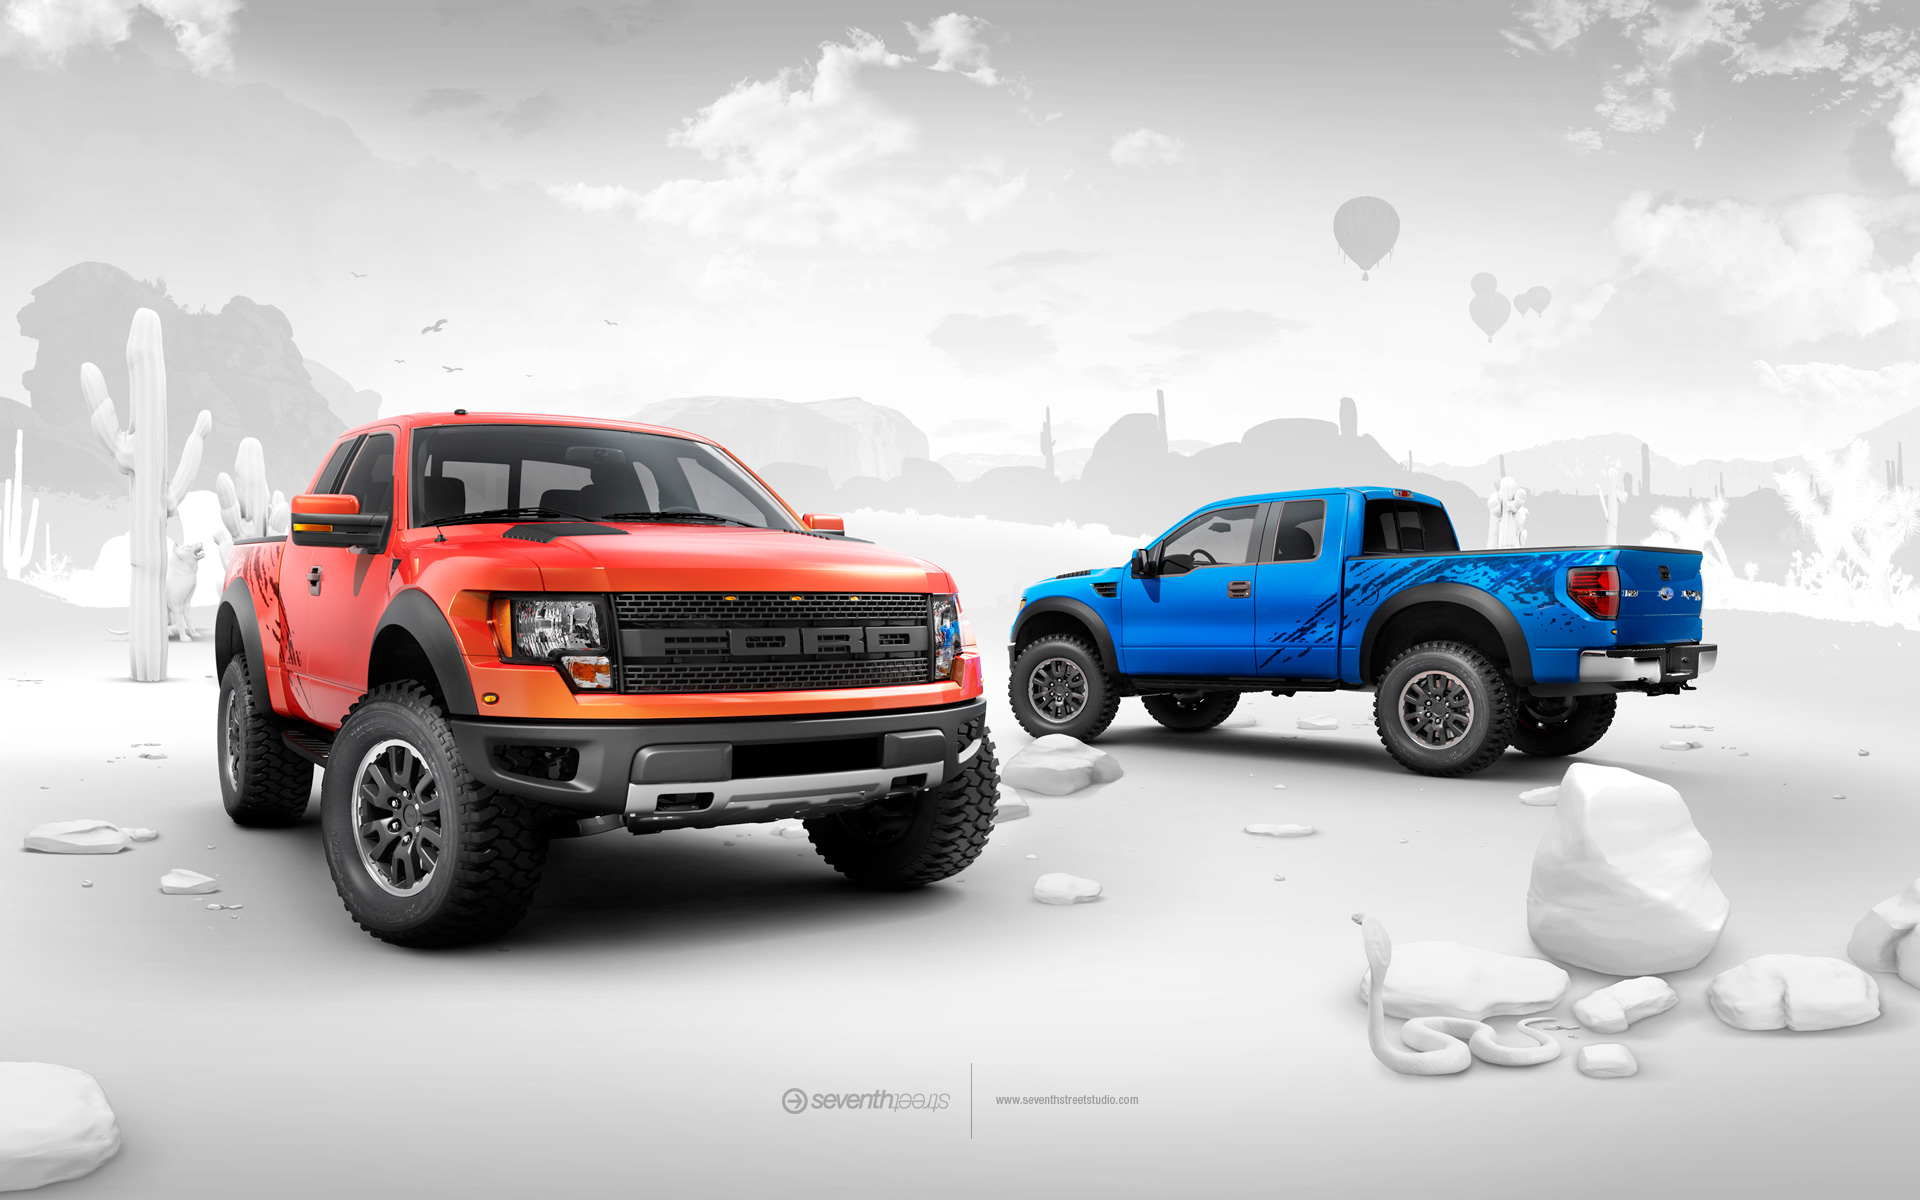 Ford Ford F150 SVT HD Wallpaper